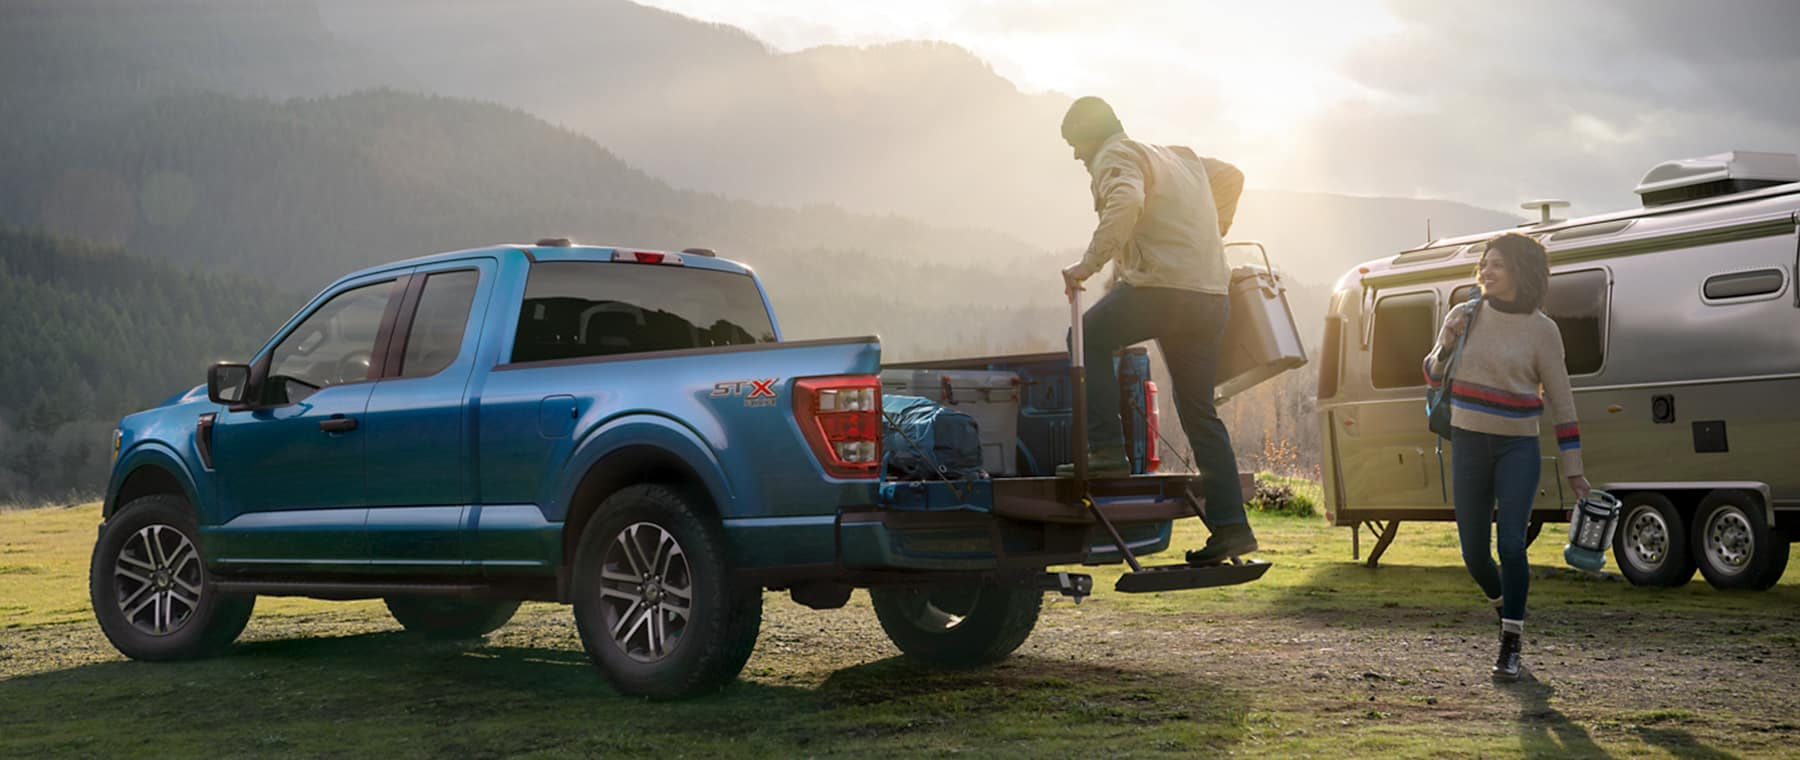 2021 Ford F150 ready for camping